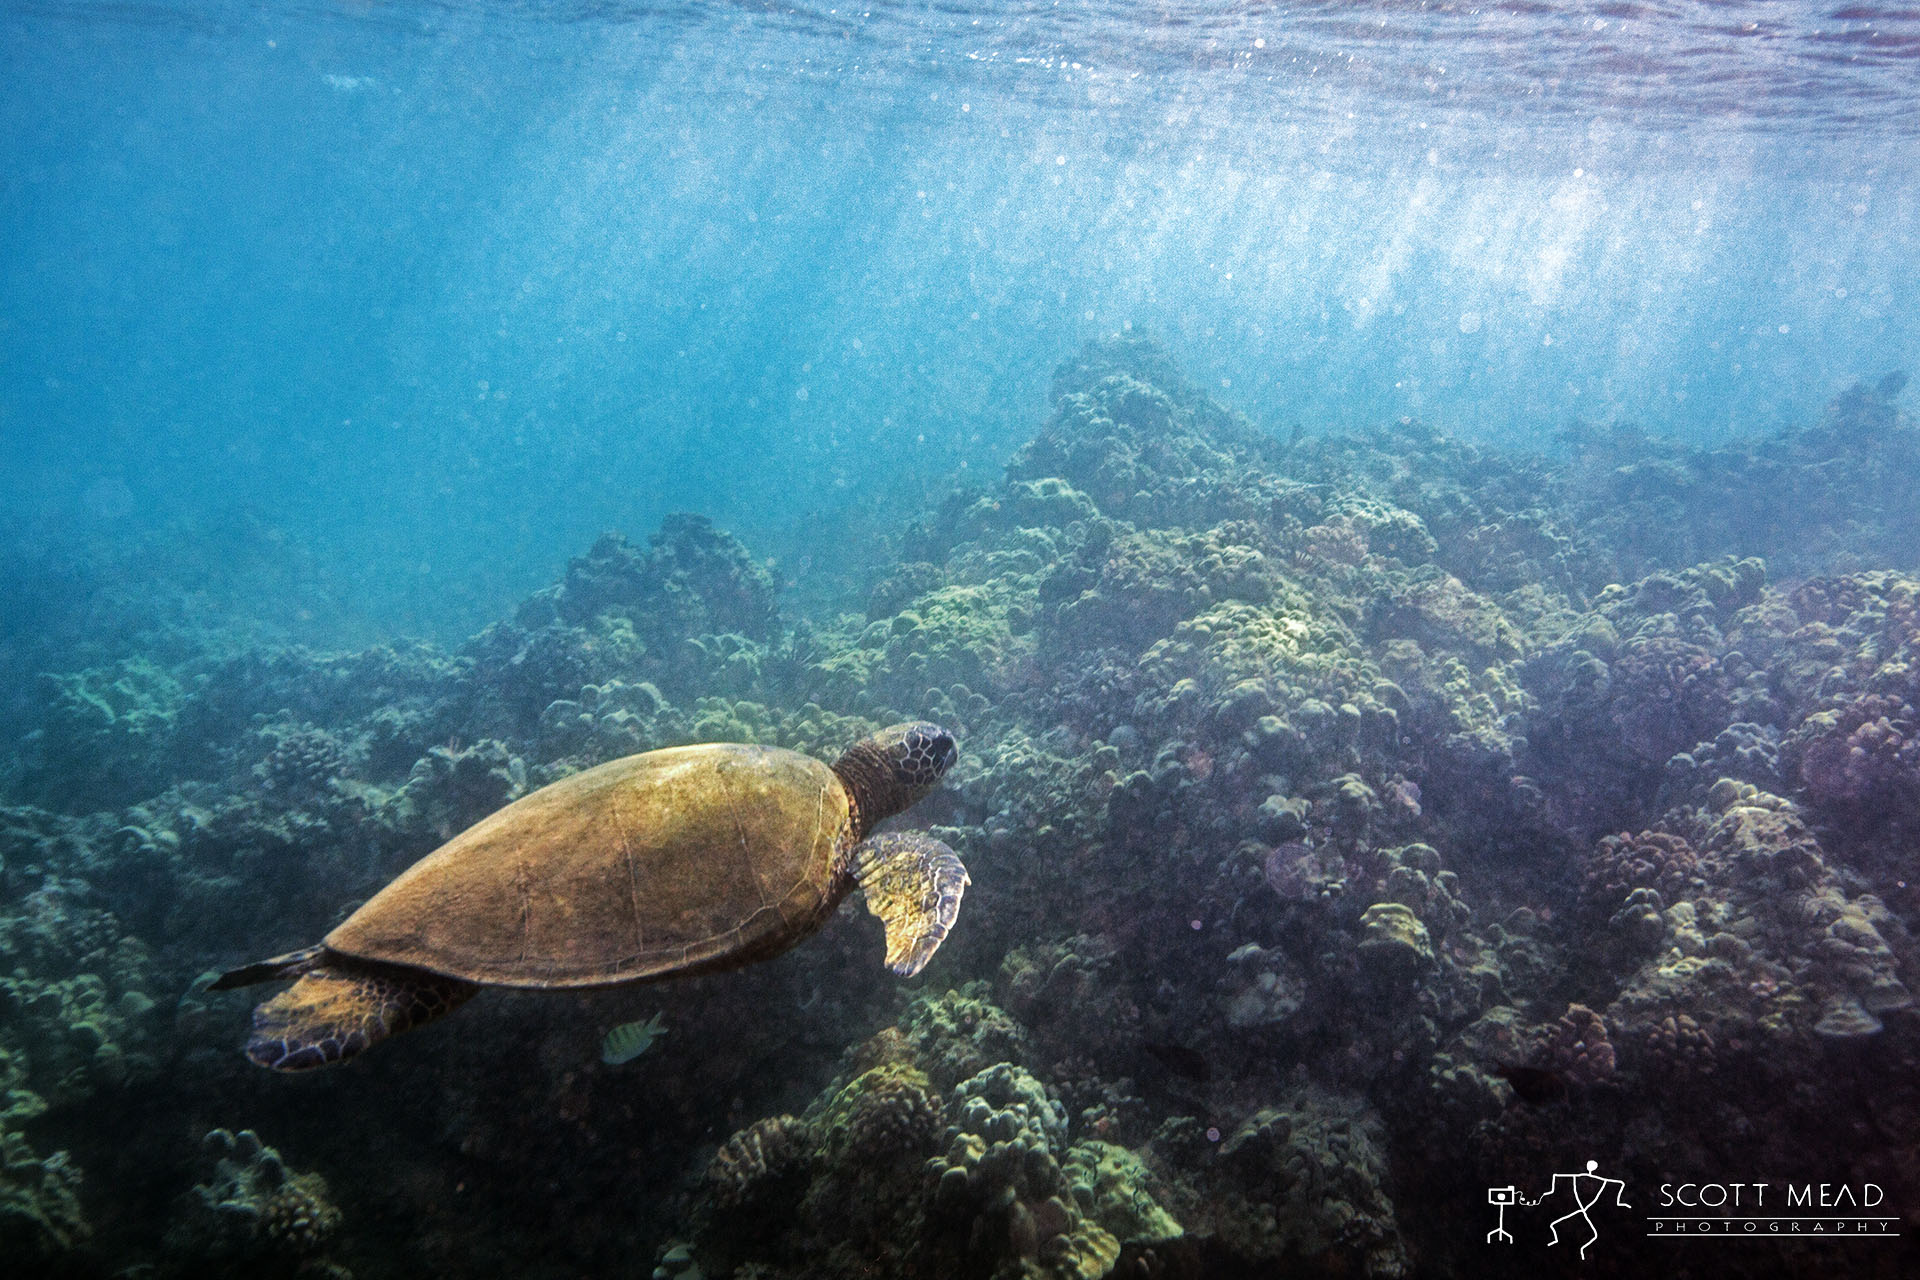 Turtle at Sea | Scott Mead Photography